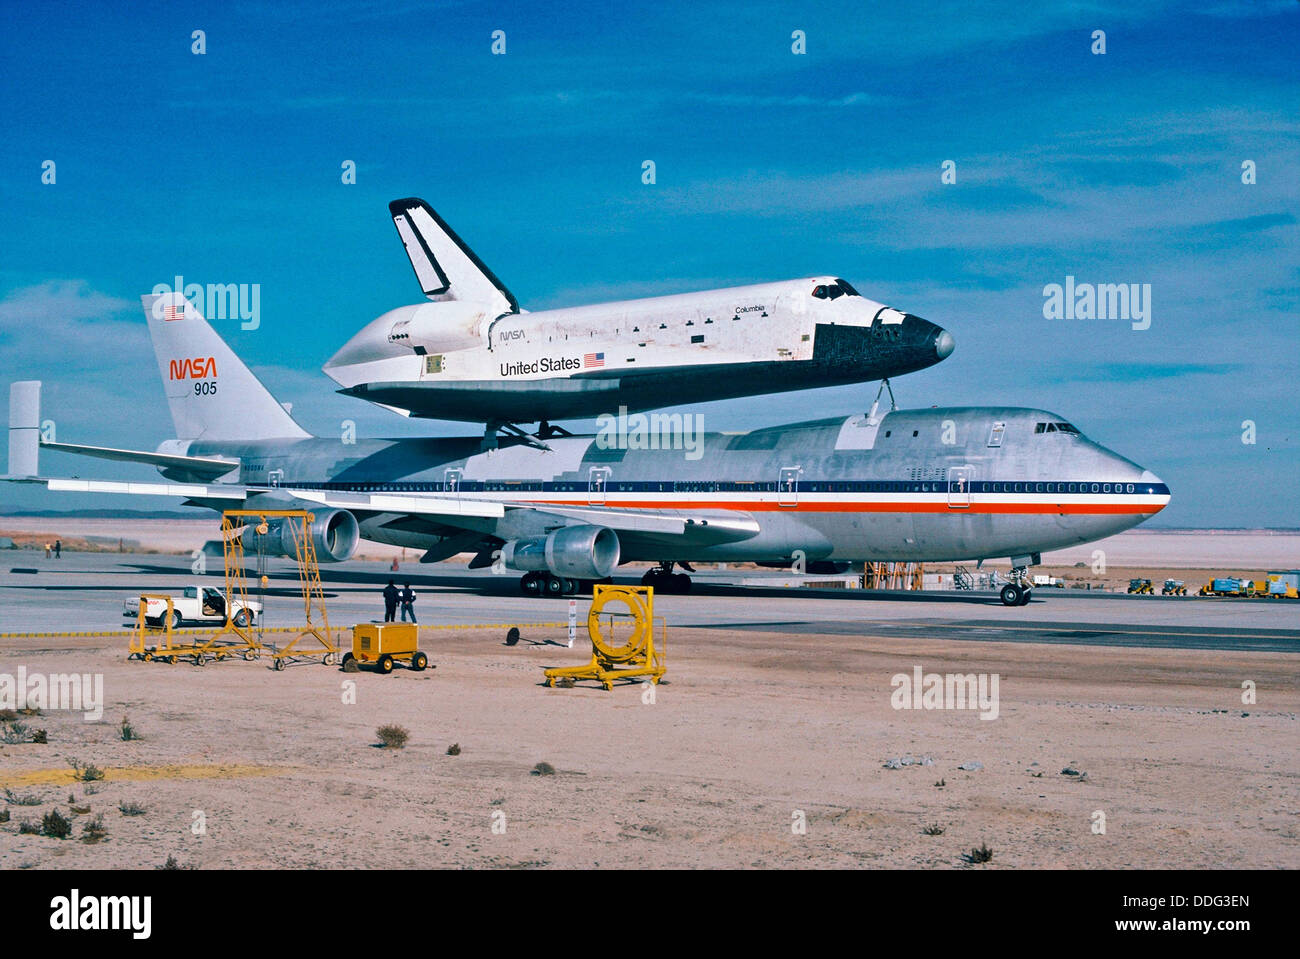 space shuttle columbia images - photo #24